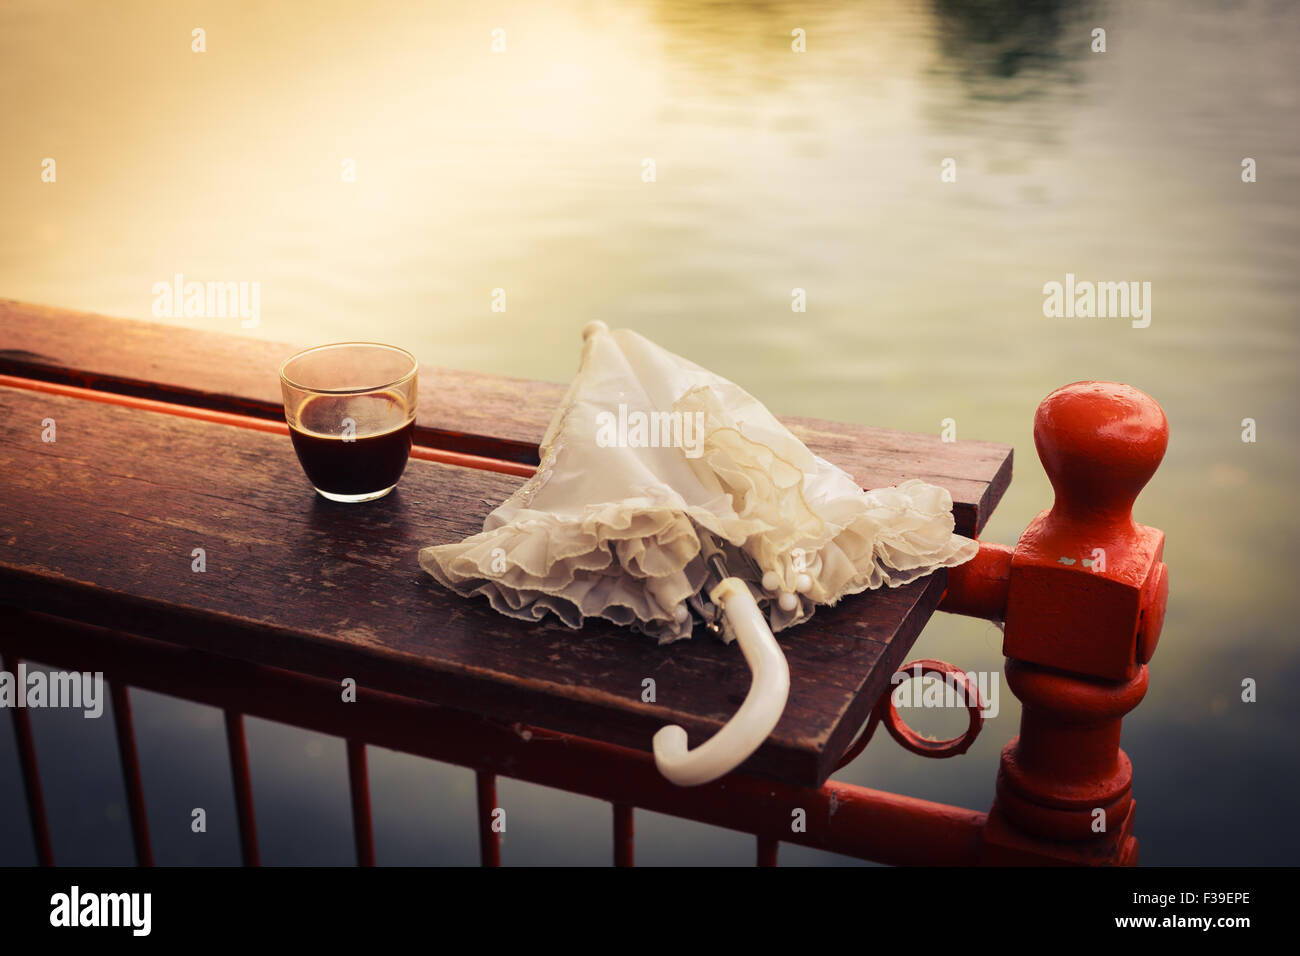 A glass of coffee and an umbrella on a wooden table by a lake in the afternoon - Stock Image